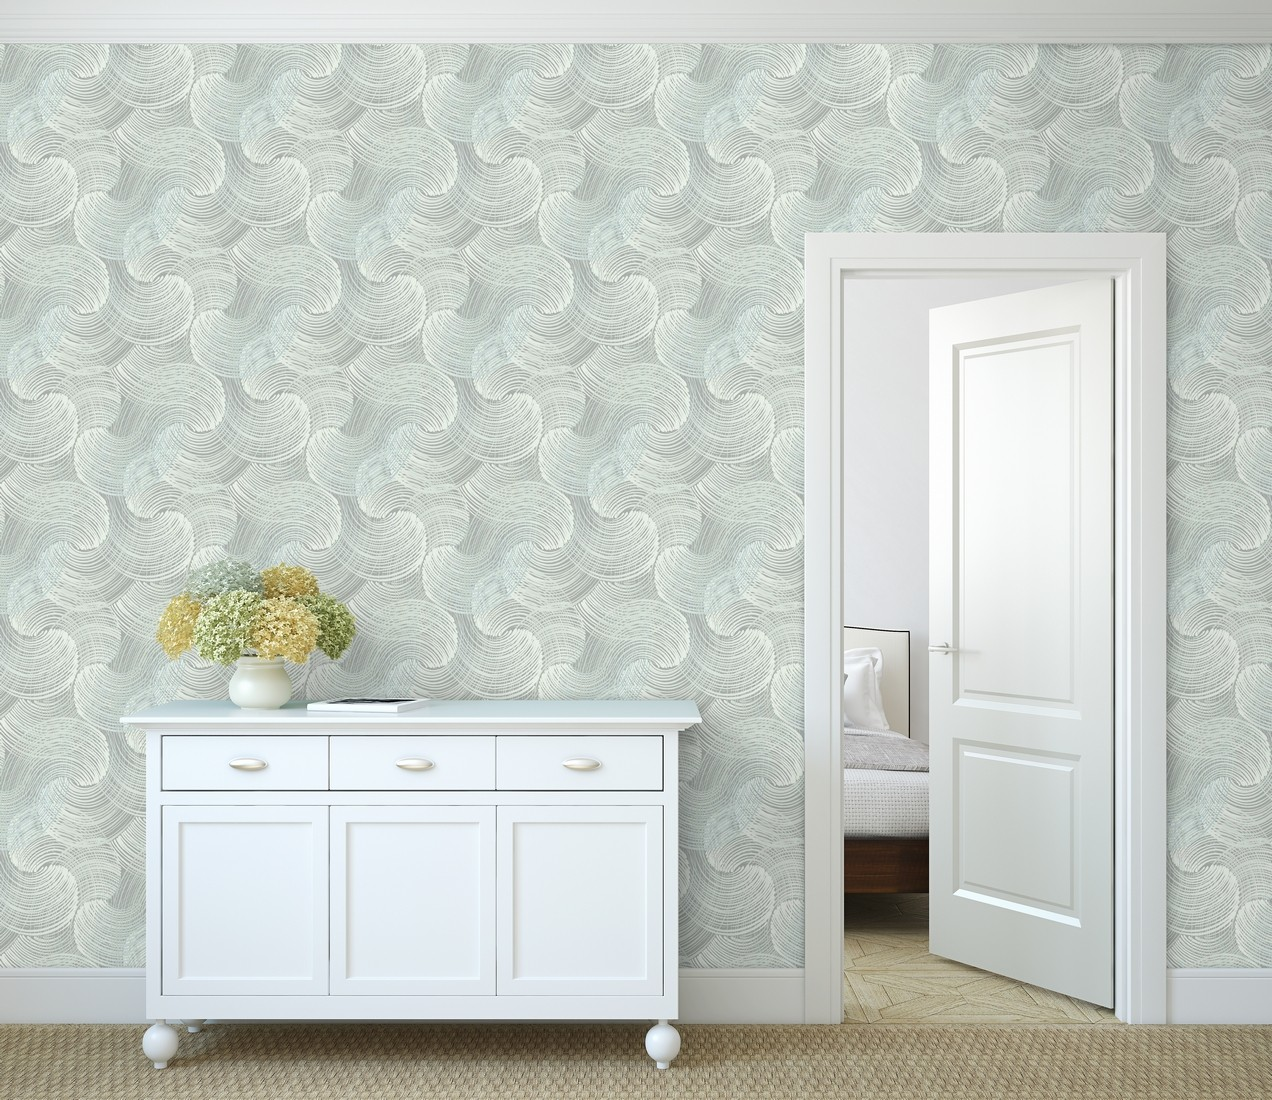 Papel pintado A Street Prints Scott Living FD25909